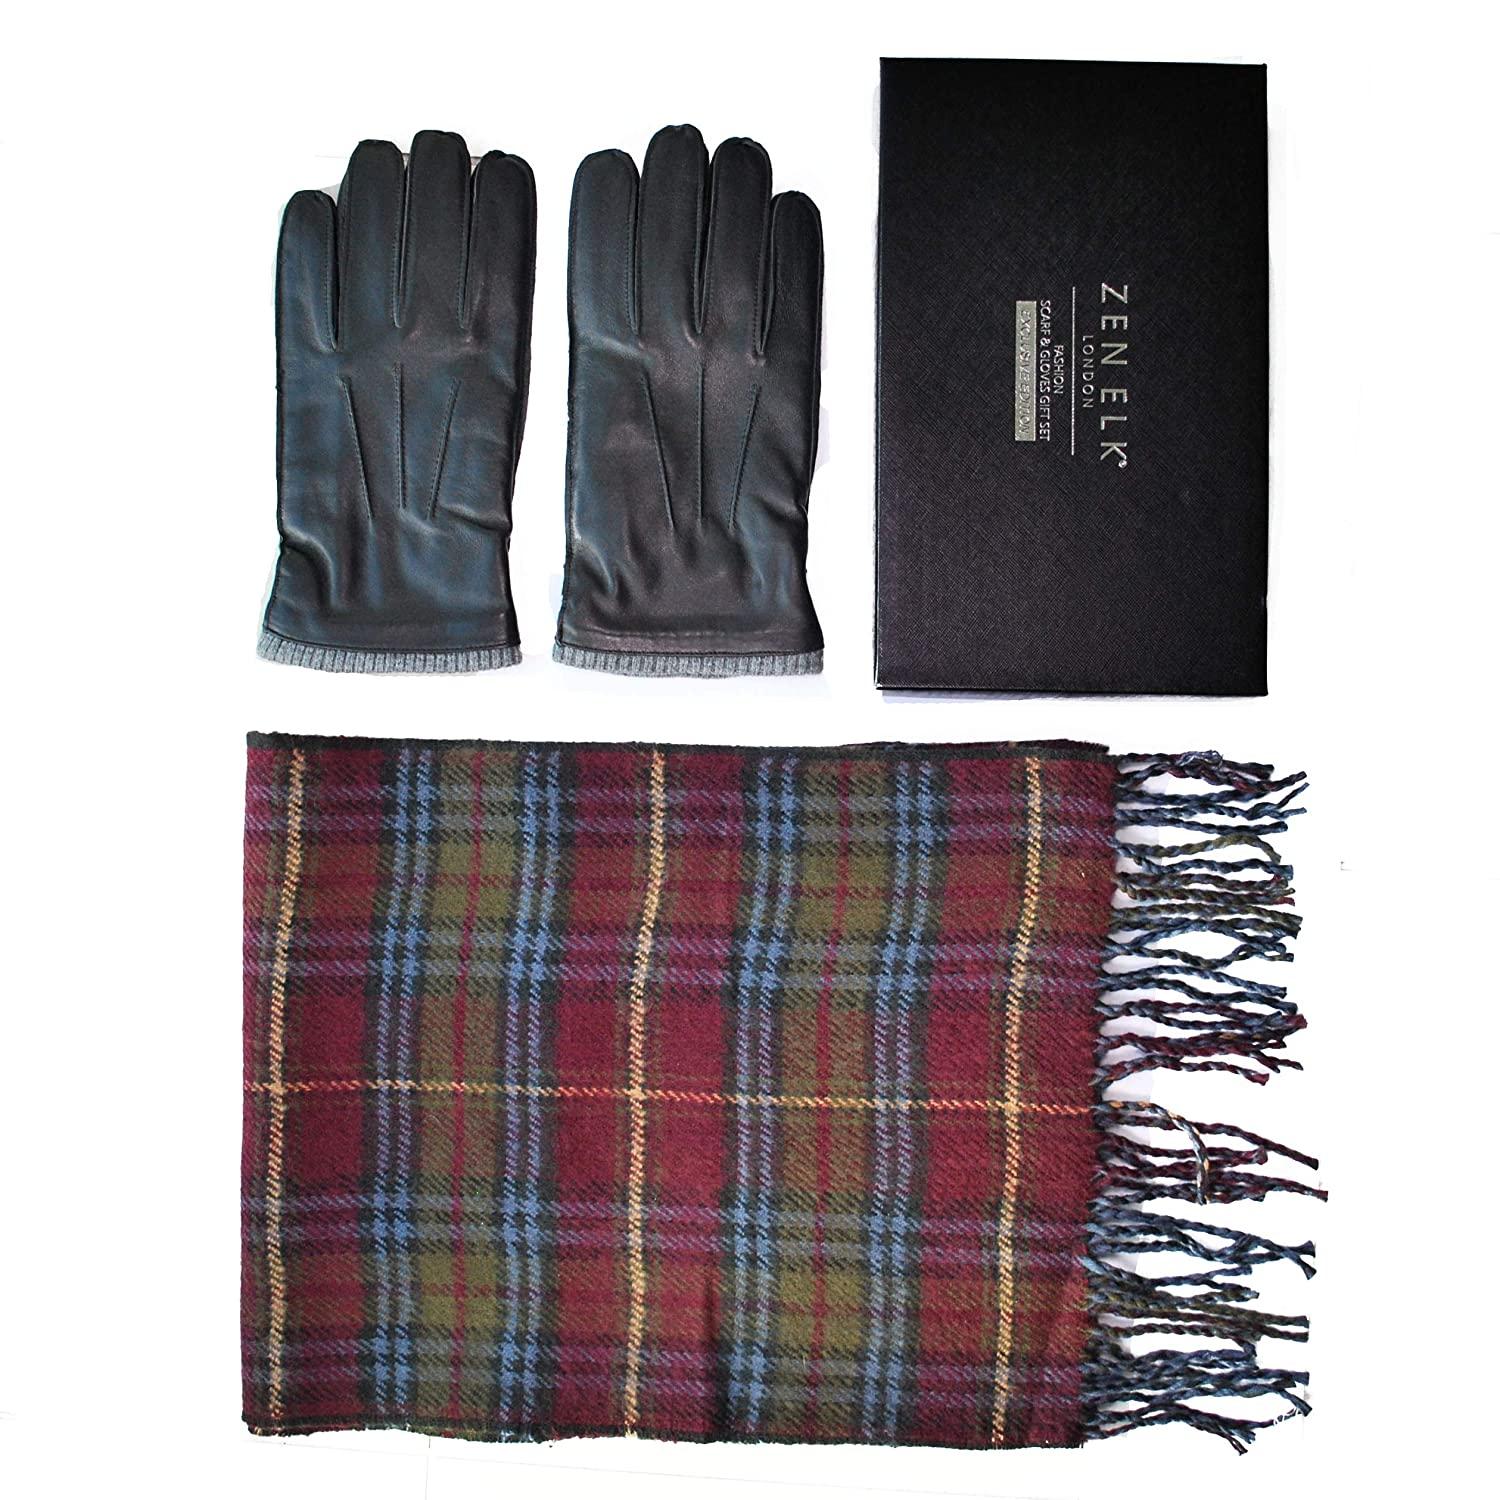 Men's Outseam Leather Gloves and Scarf with Reversible Patterns Box Set #19 (Large)